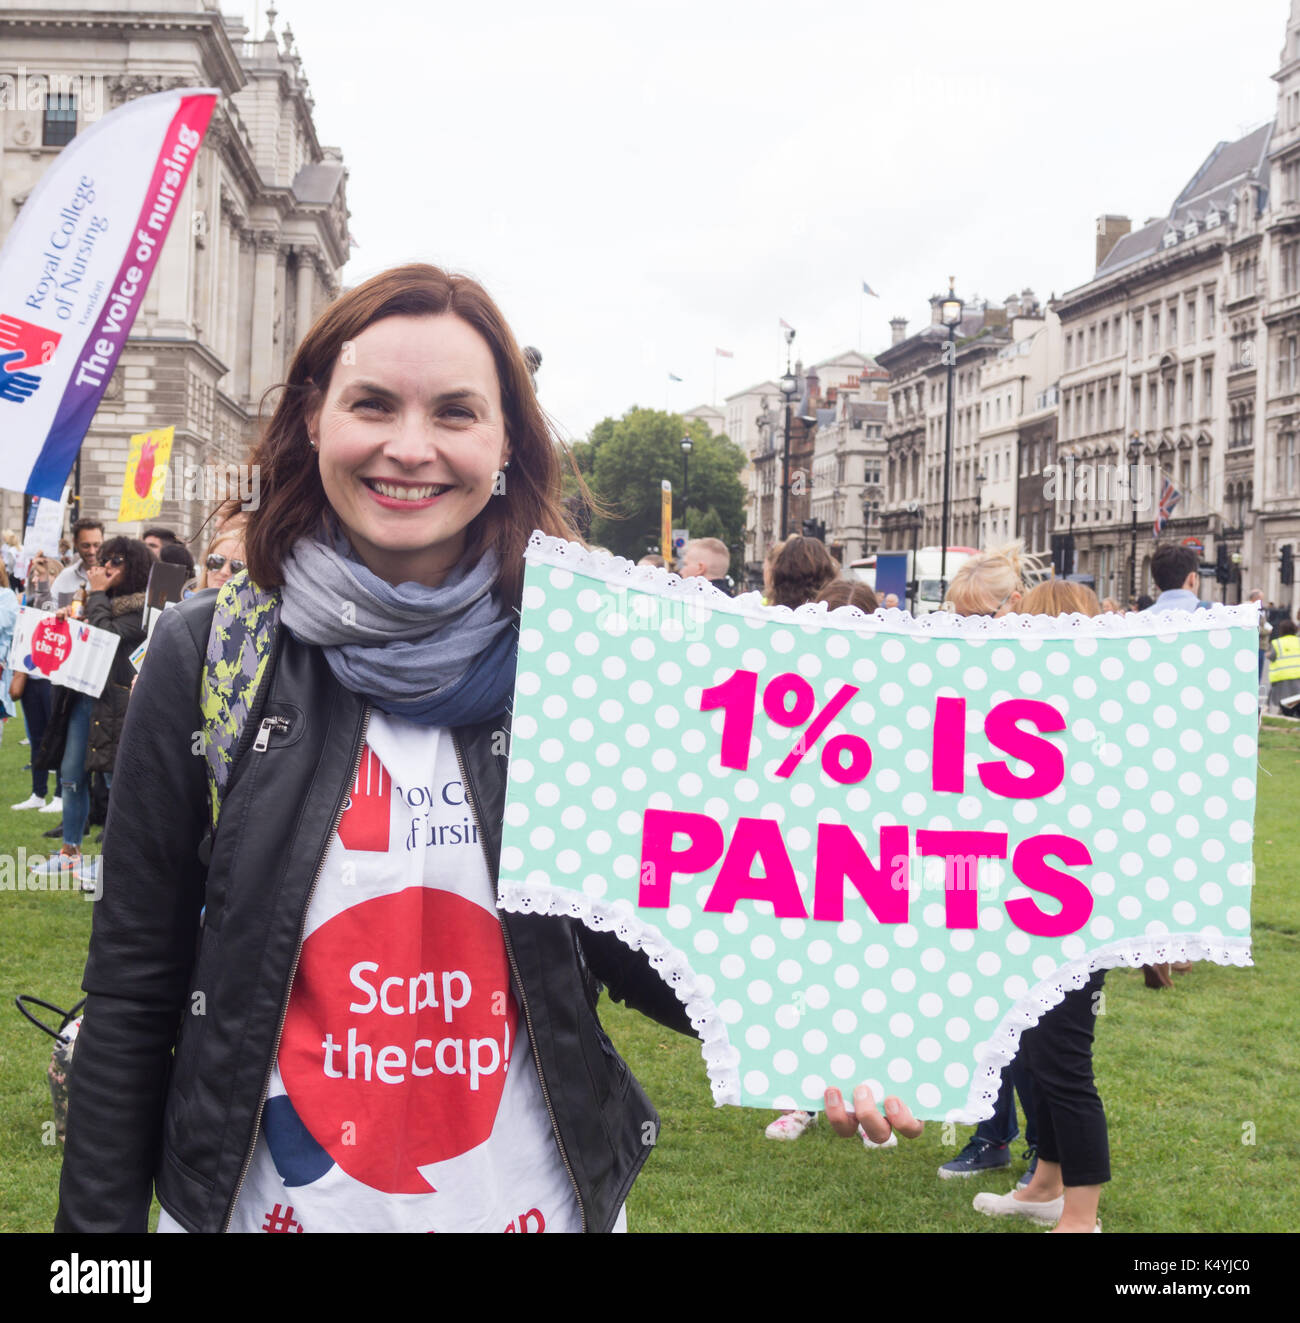 London, UK. 6th Sep, 2017. Thousands of nurses, members of the public and other healthcare workers from all over - Stock Image